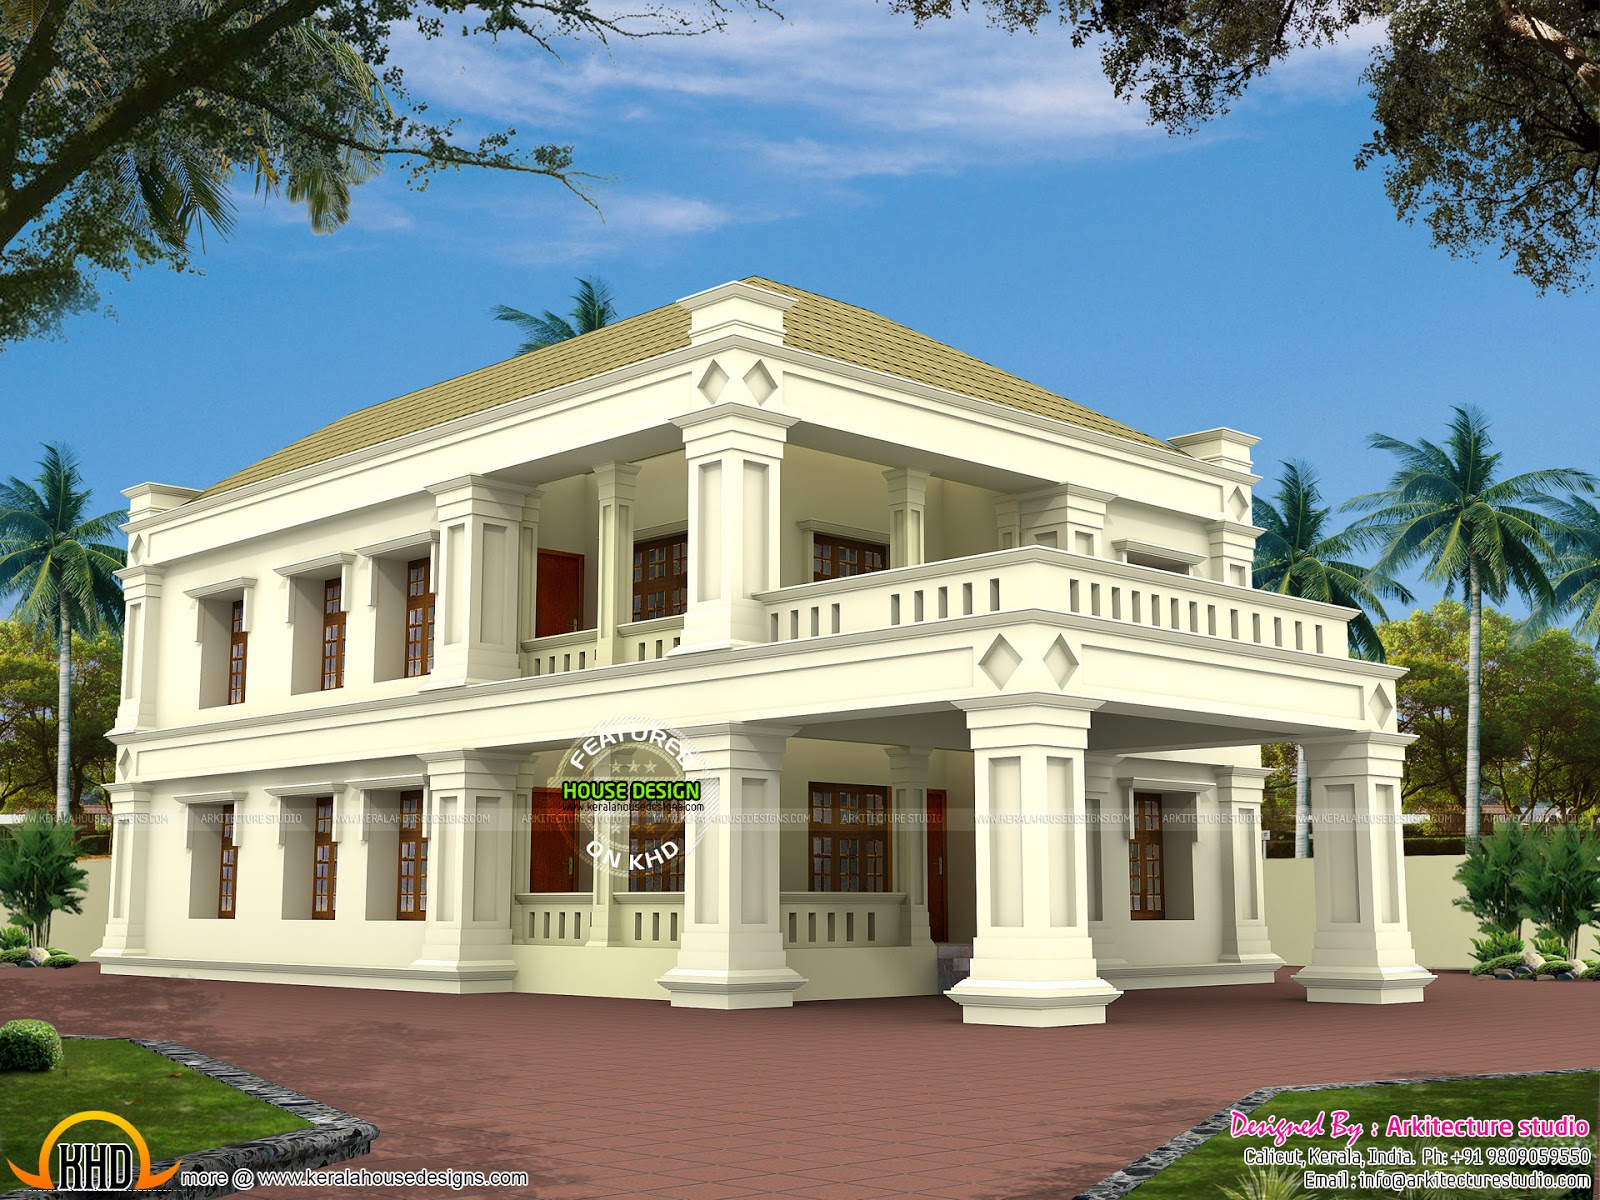 Square pillar type colonial mix home kerala home design for Colonial home designs